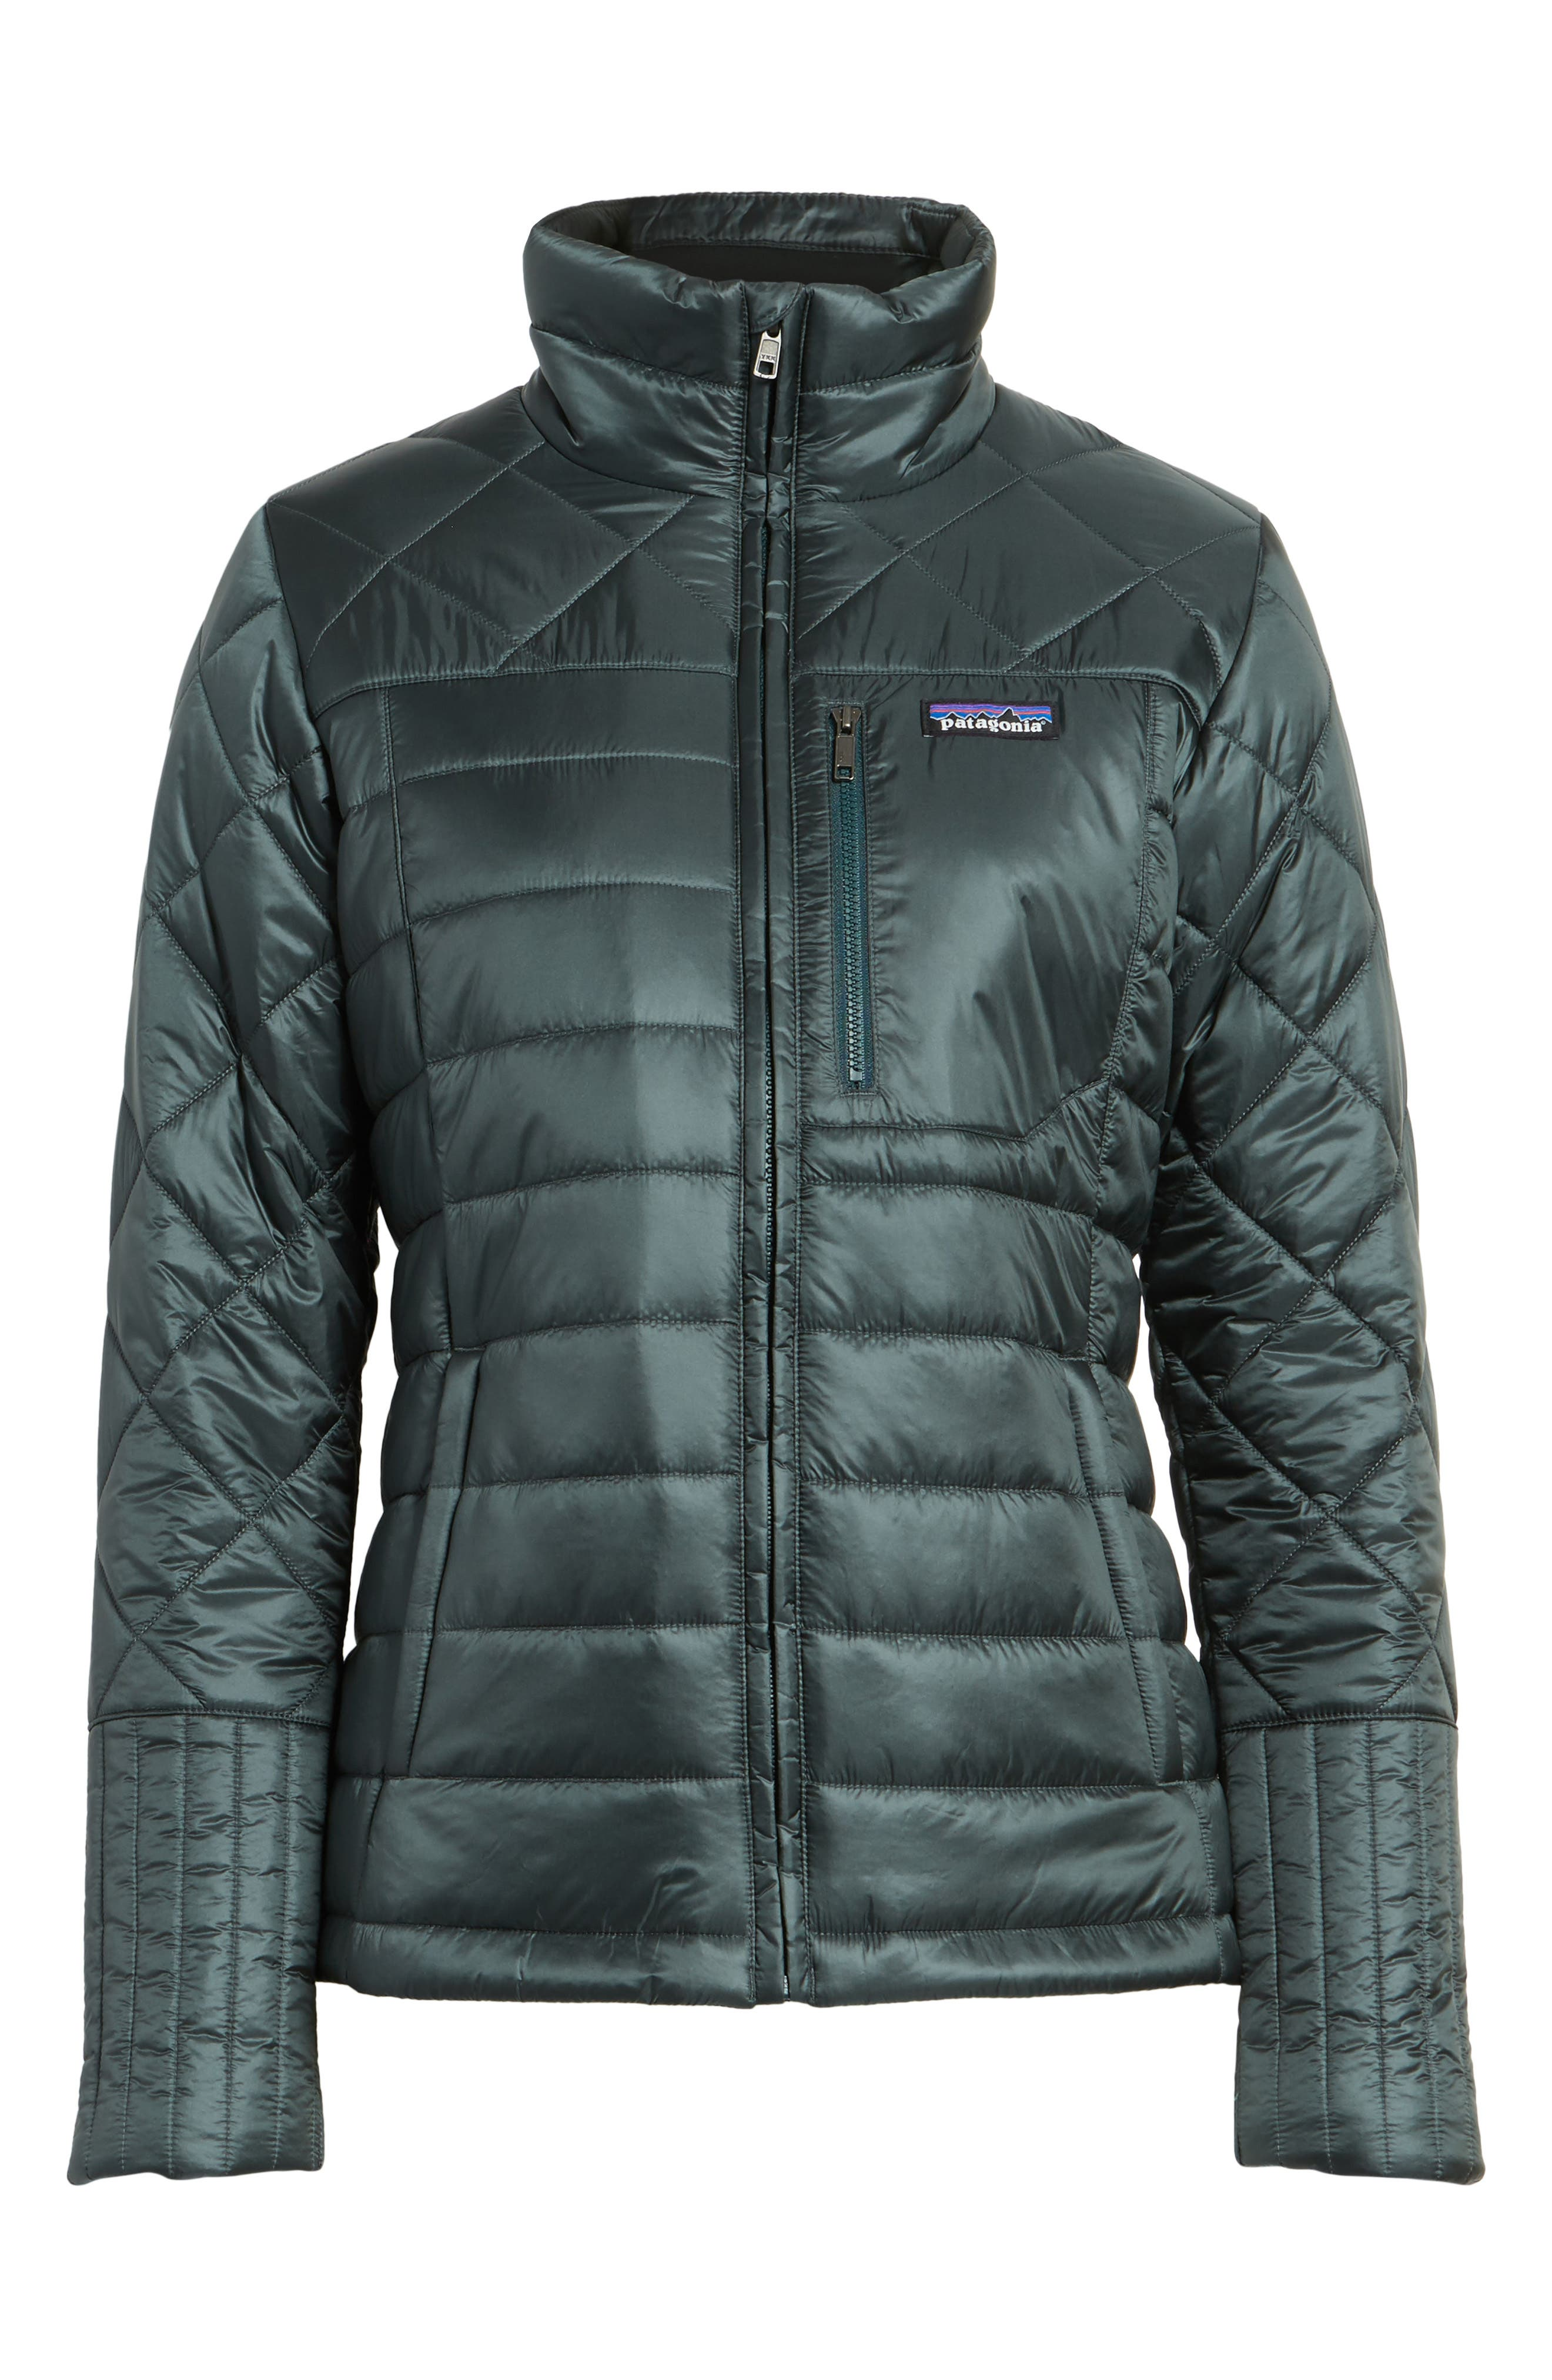 Main Image - Patagonia Radalie Water Repellent Thermogreen-Insulated Jacket